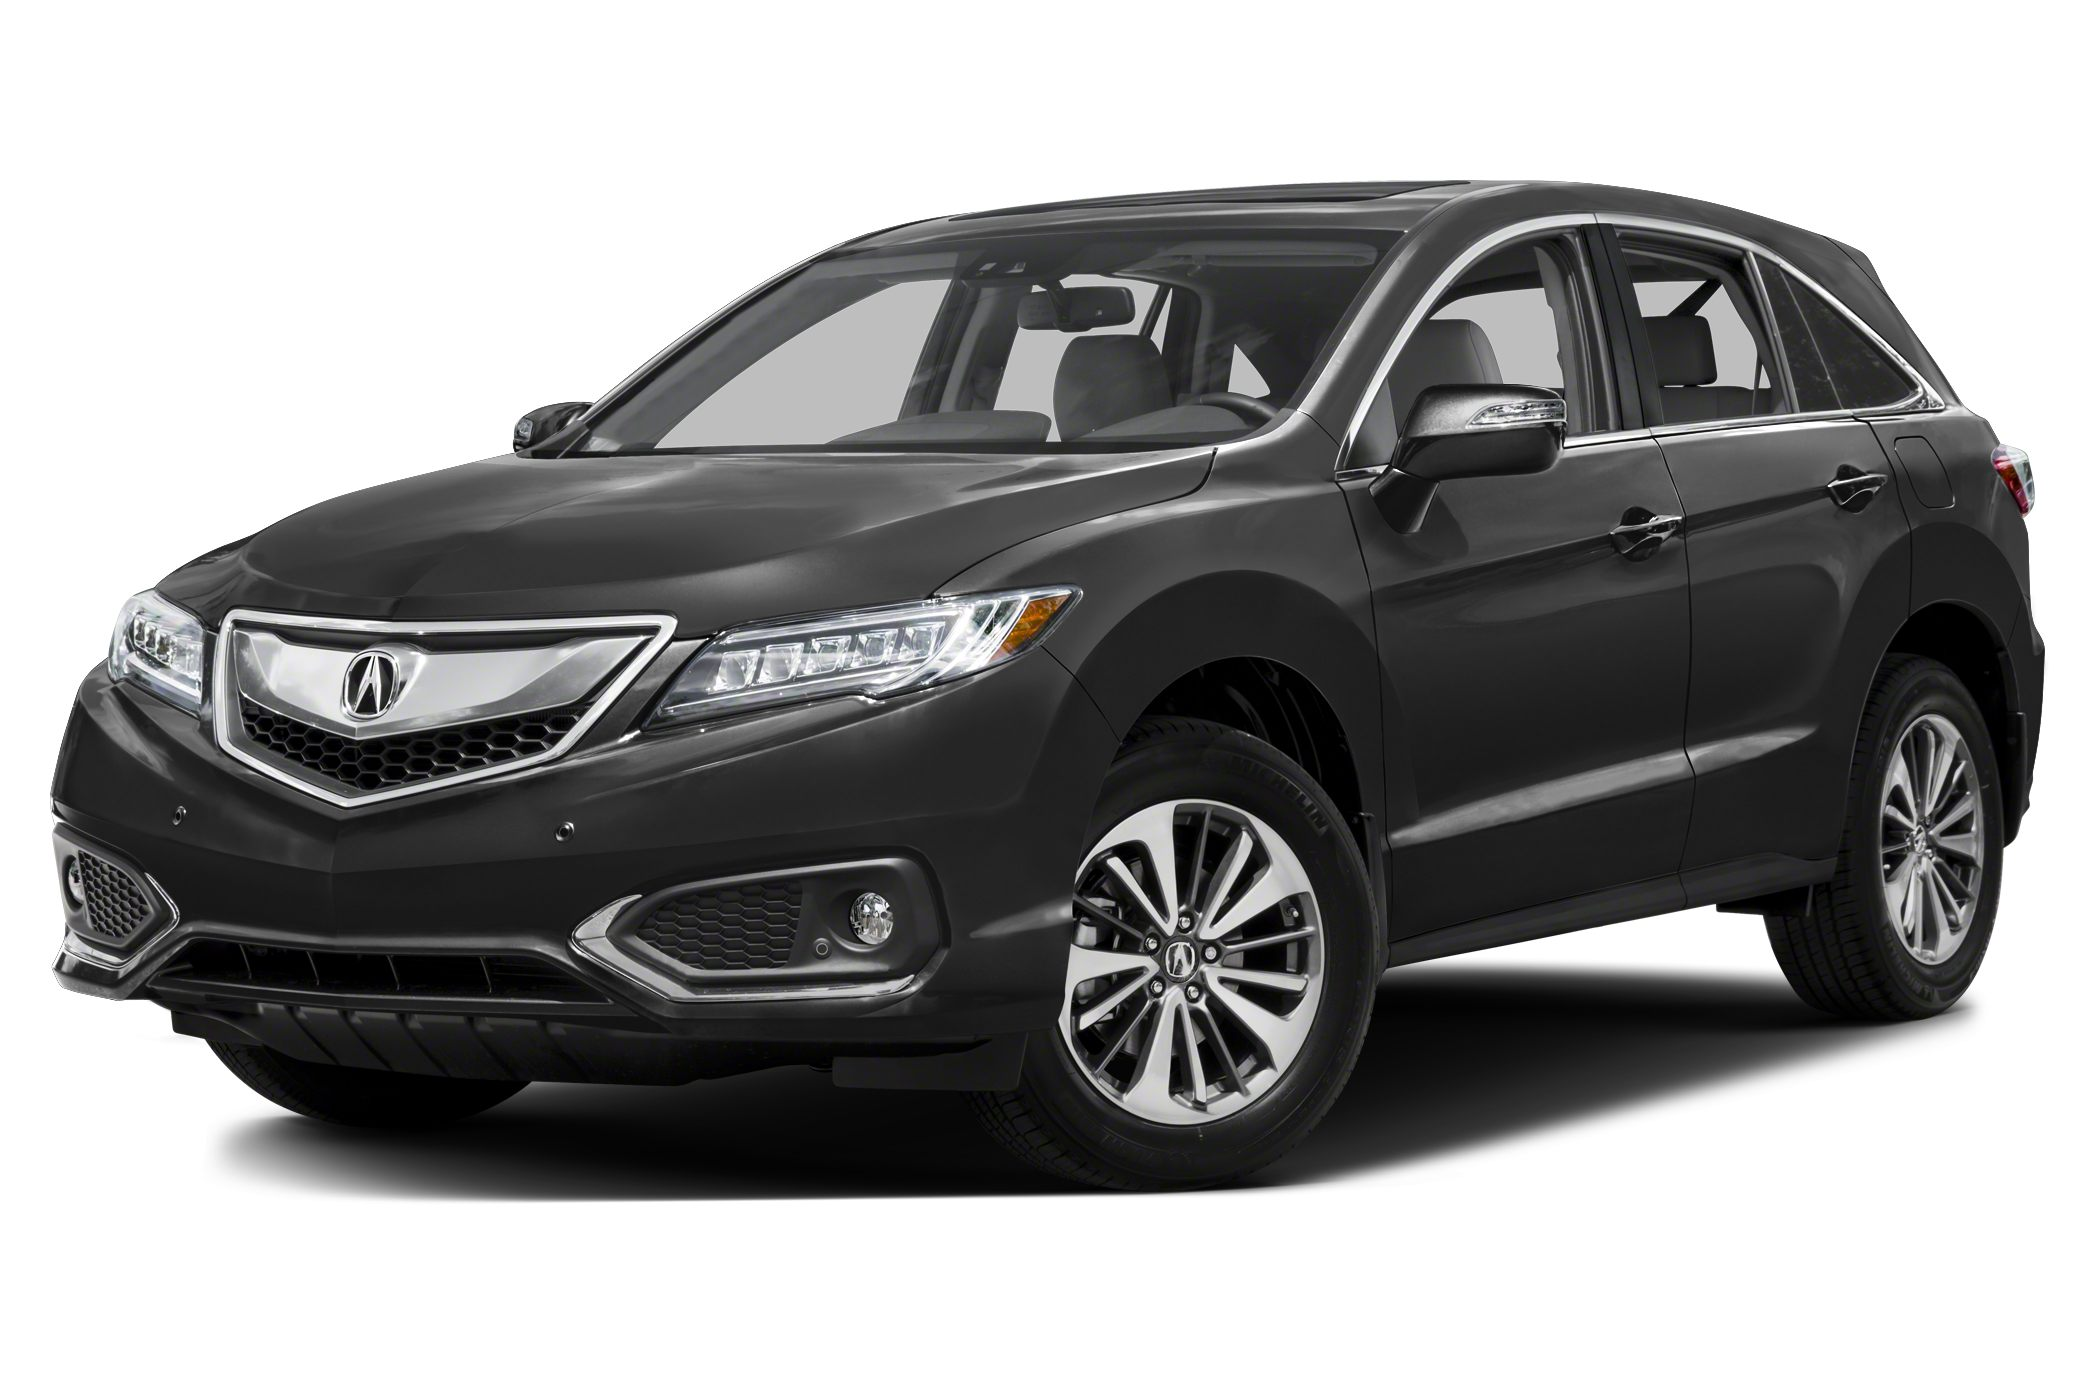 2016 Acura RDX Advance The 2016 Acura RDX is a powerful compact crossover that offers a stylish ex